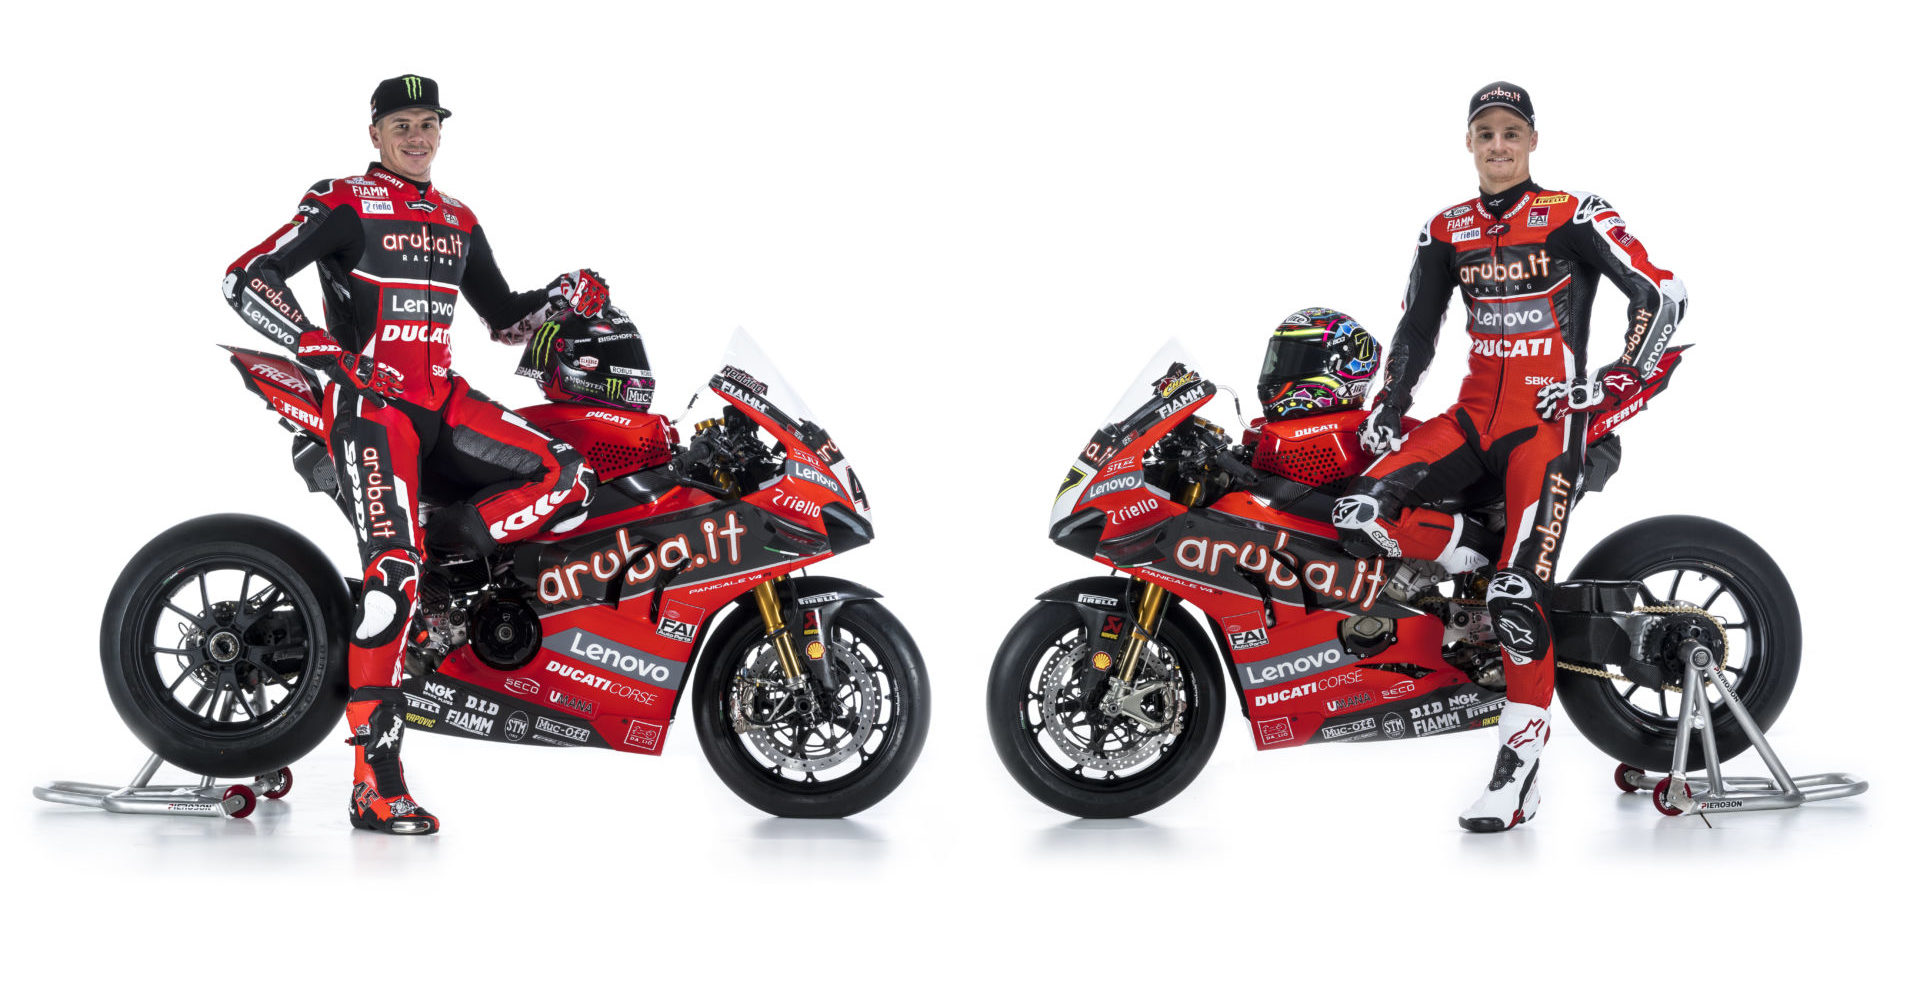 Chaz Davies (right) and Scott Redding (left). Photo courtesy of Aruba.it Racing Ducati.